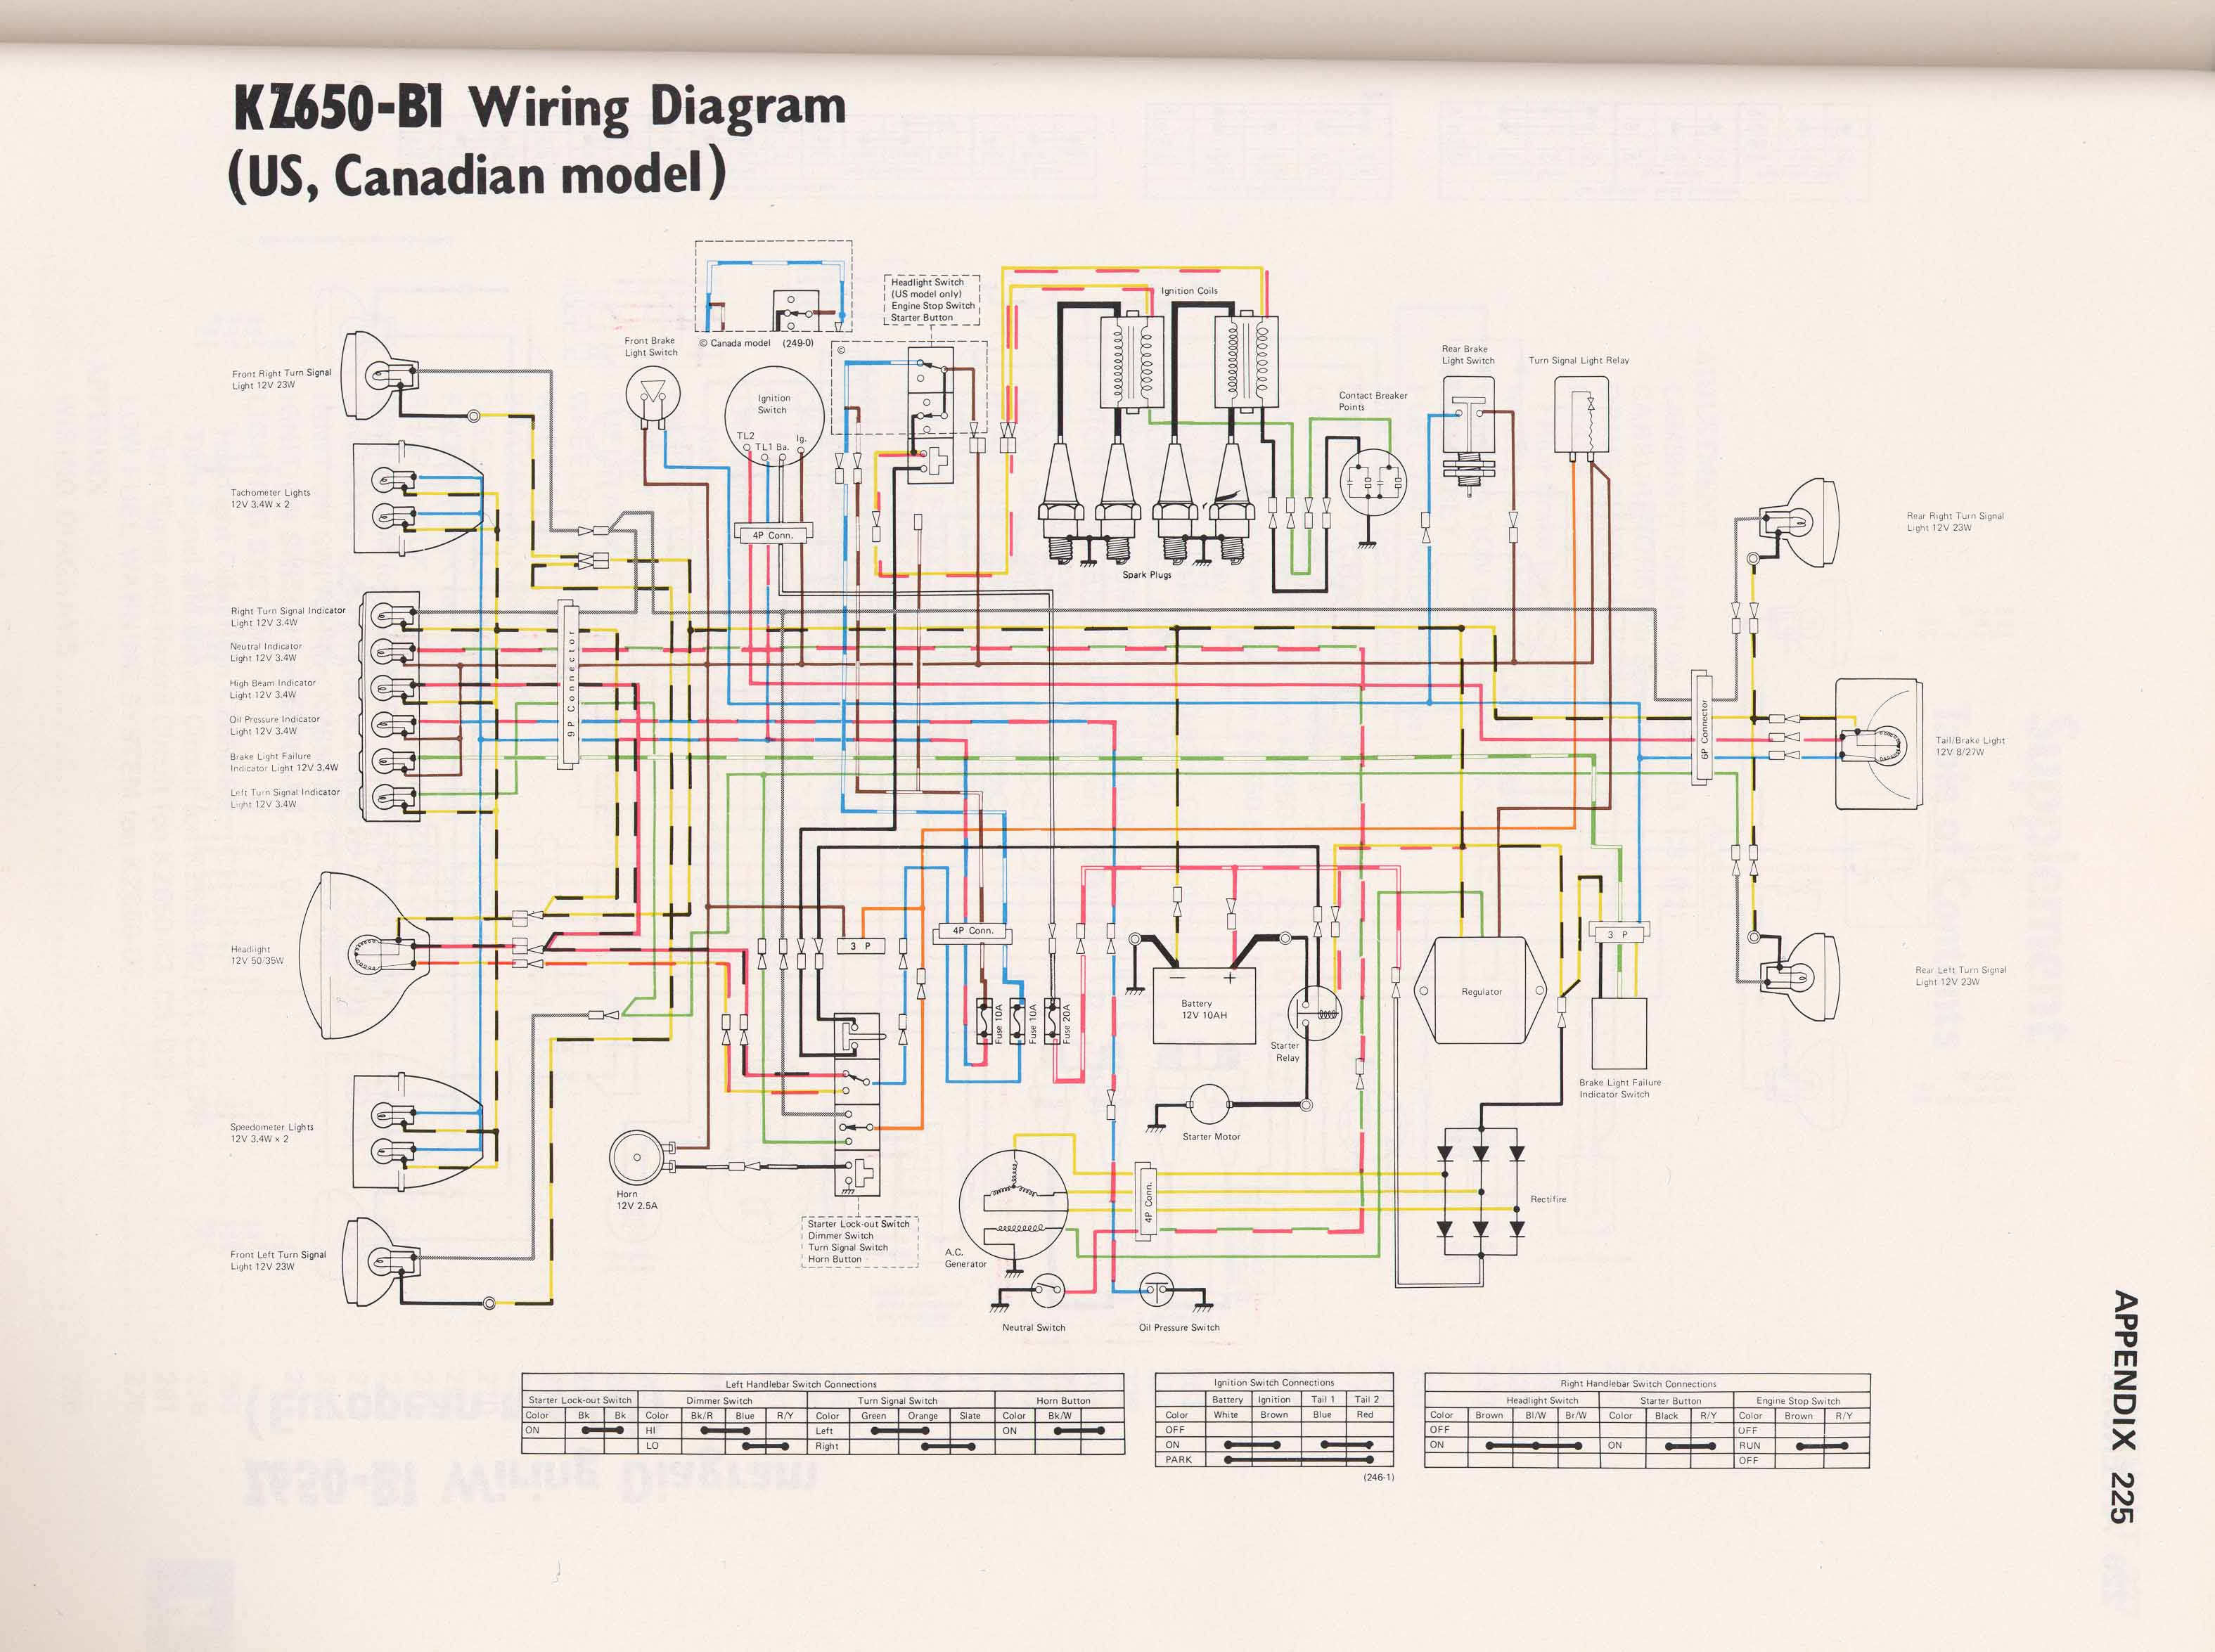 KZ650 B1 kawasaki kz650 wiring diagram vulcan 1500 wiring diagram \u2022 free kawasaki wiring diagrams at gsmportal.co